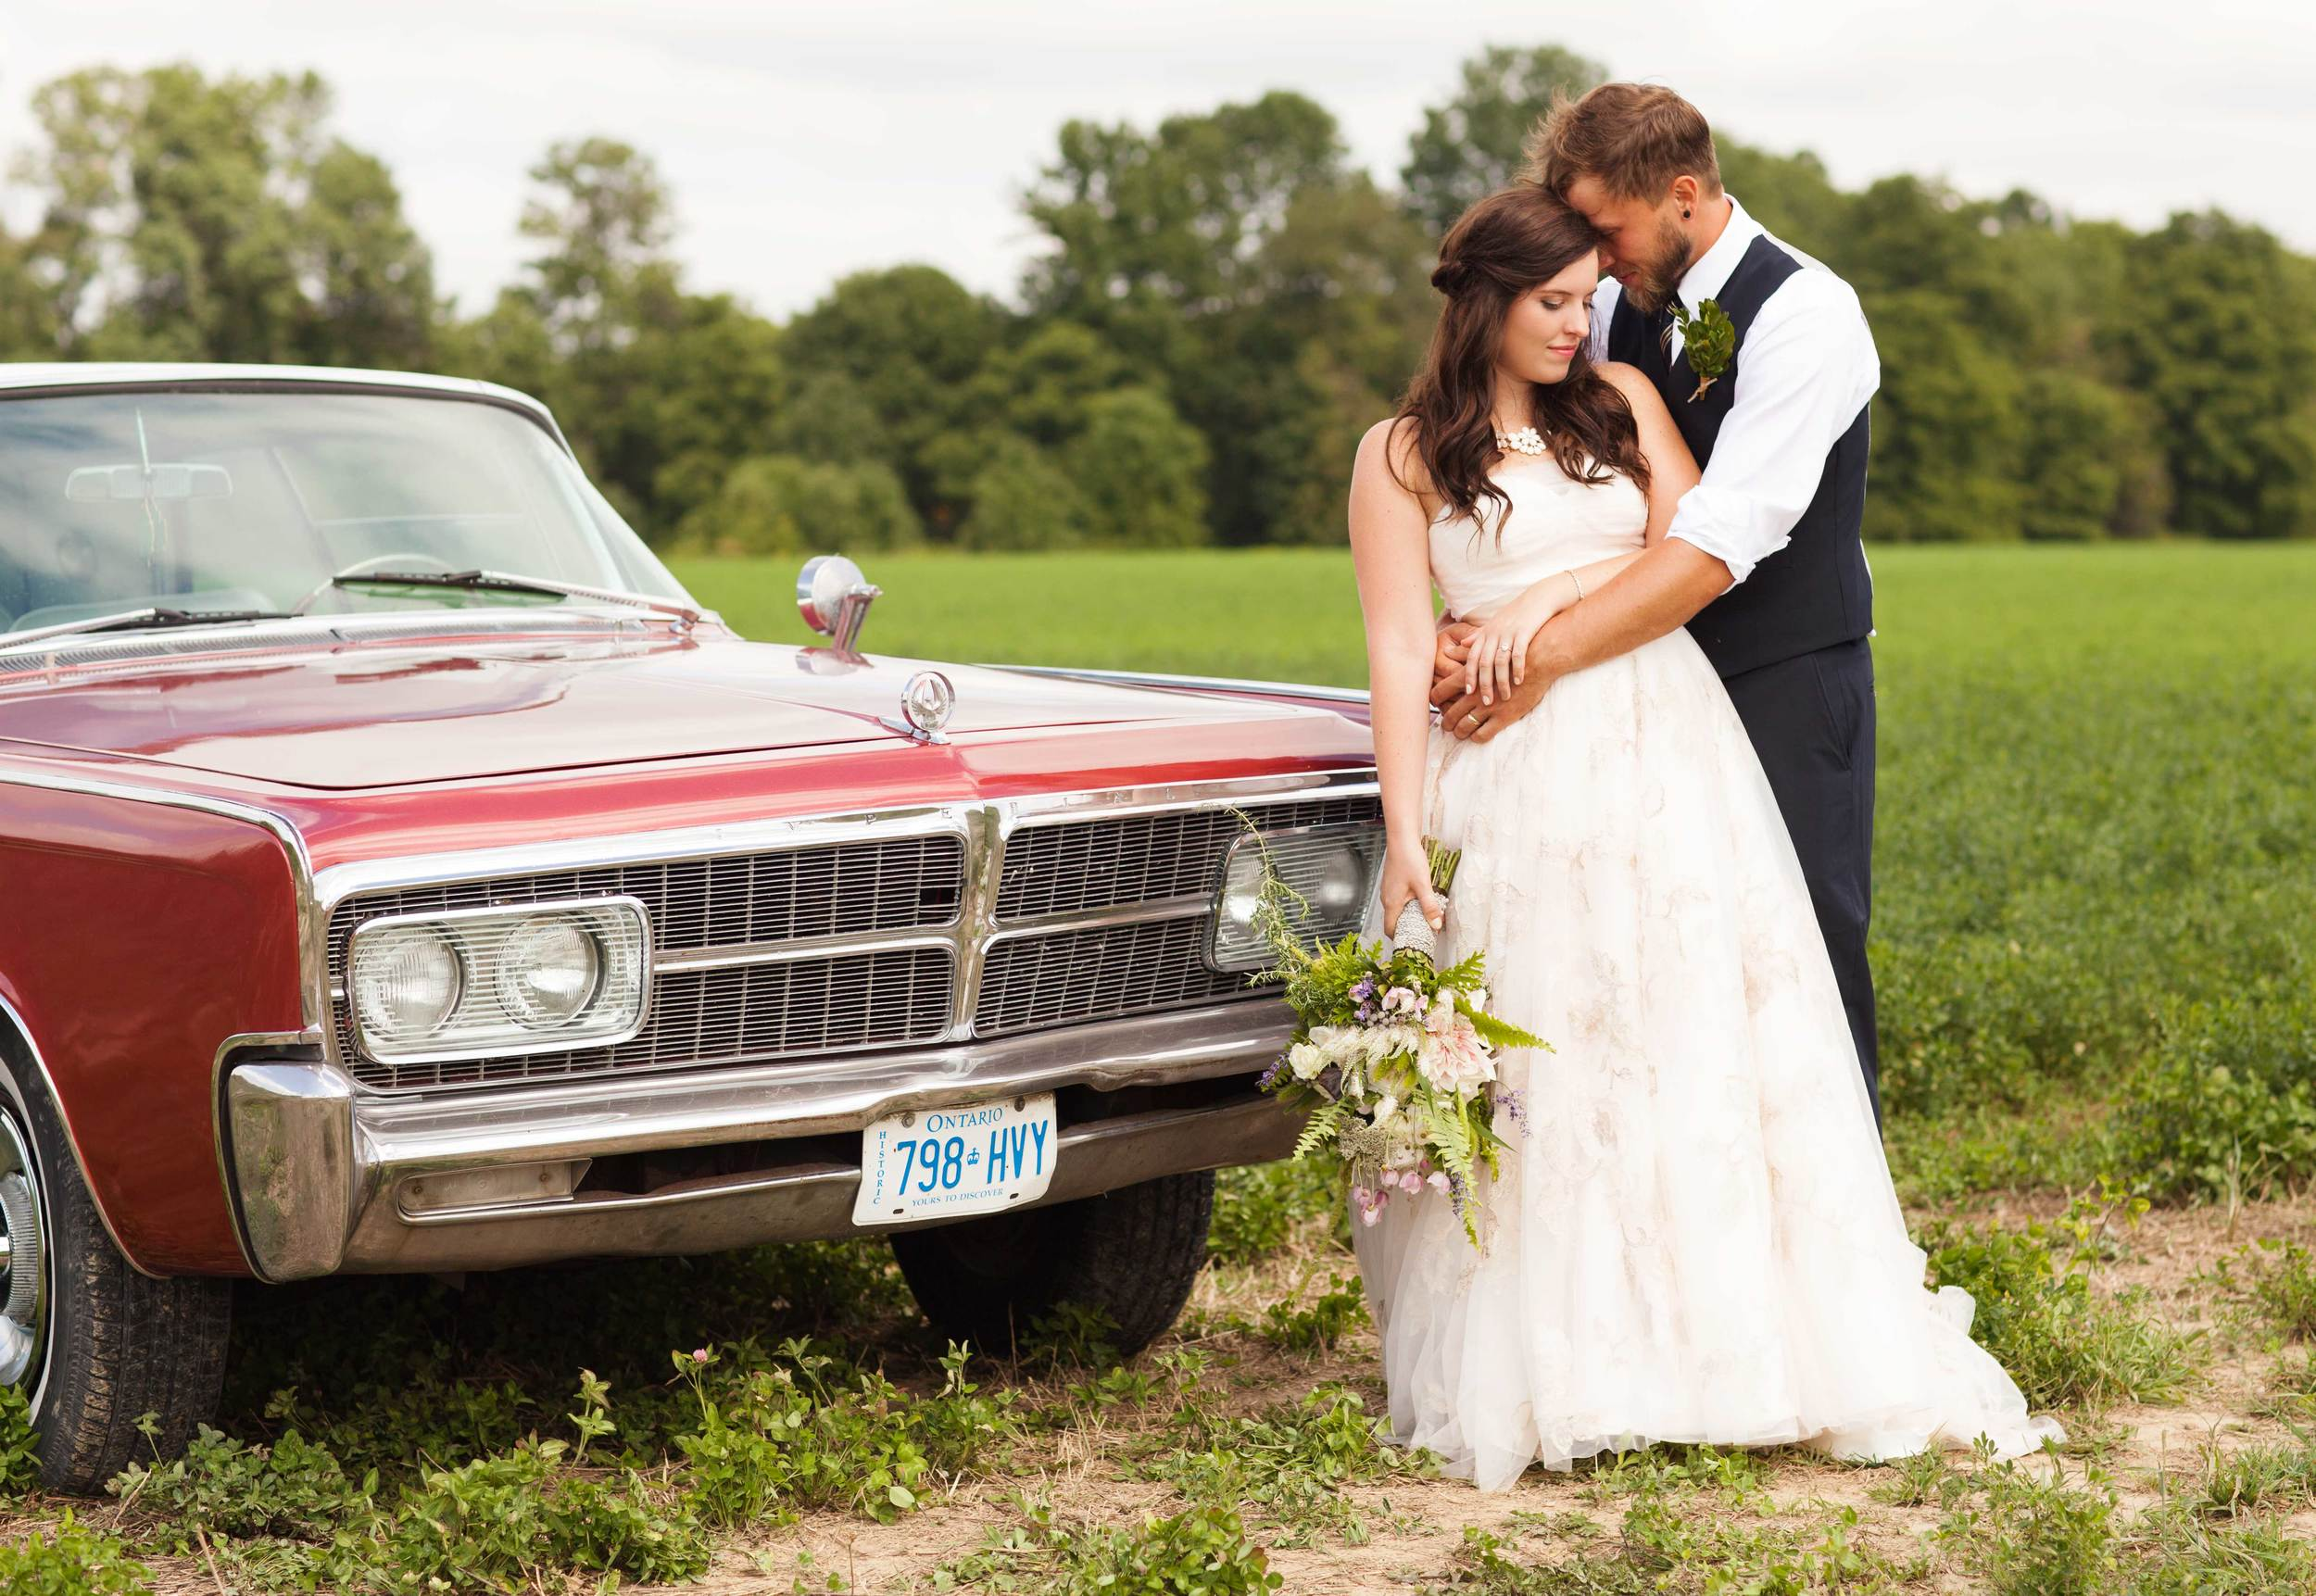 Justin-&-Jenna-Married-281.jpg